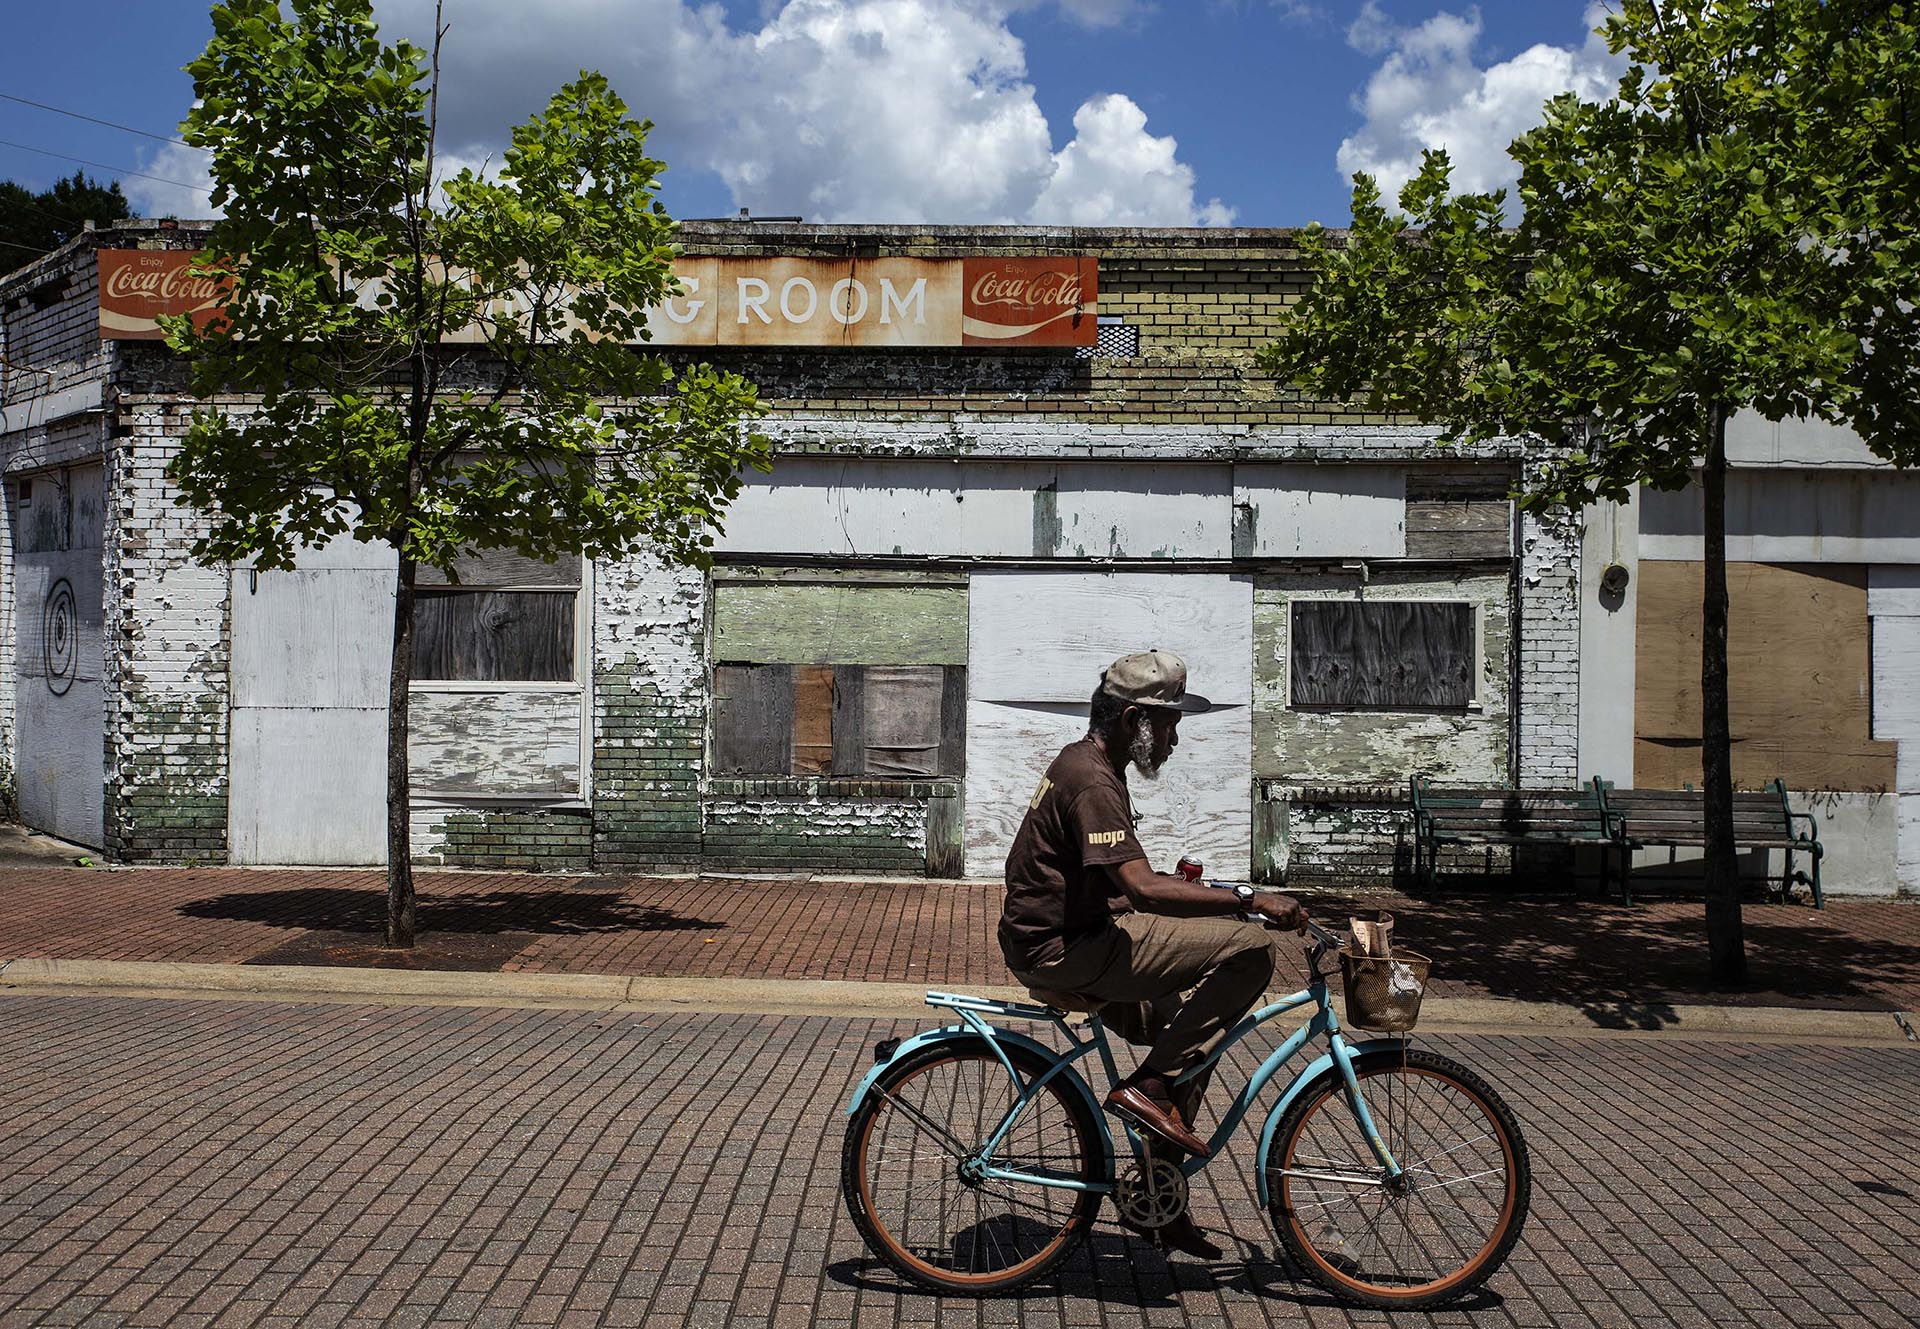 A pedestrian rides his bicycle in the 300 block of Farish Street in Jackson Wednesday, June 27, 2018. (Photo by Eric J. Shelton/GroundTruth)